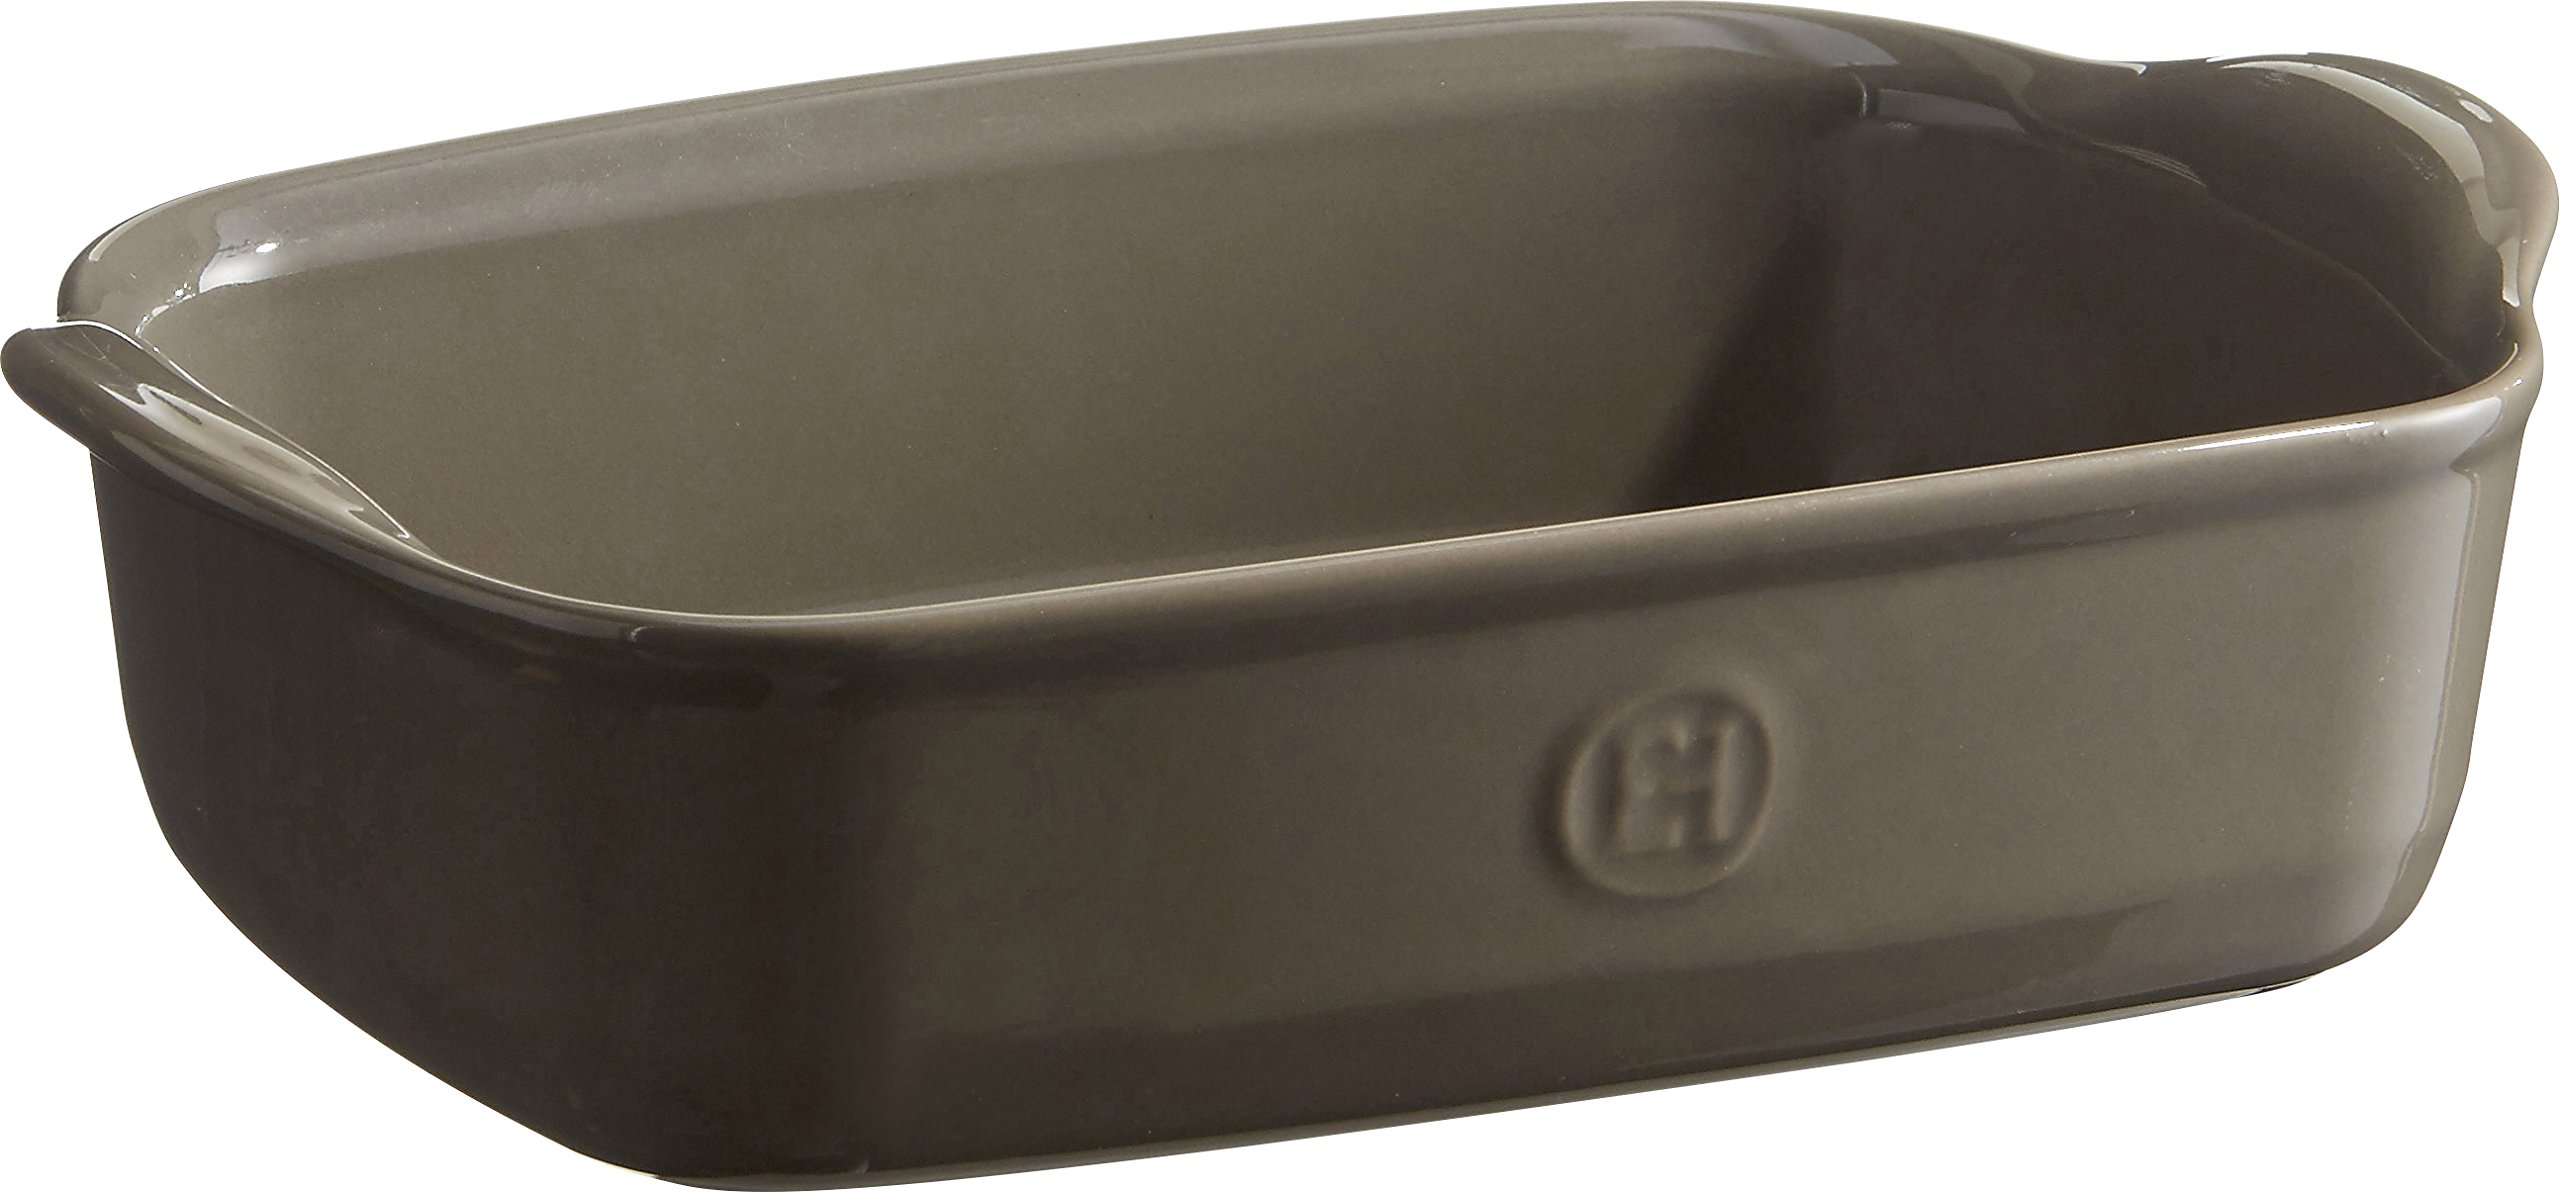 Emile Henry 959649 Rectangular Baking Dish, 8.7'' x 5.5'', Flint by Emile Henry